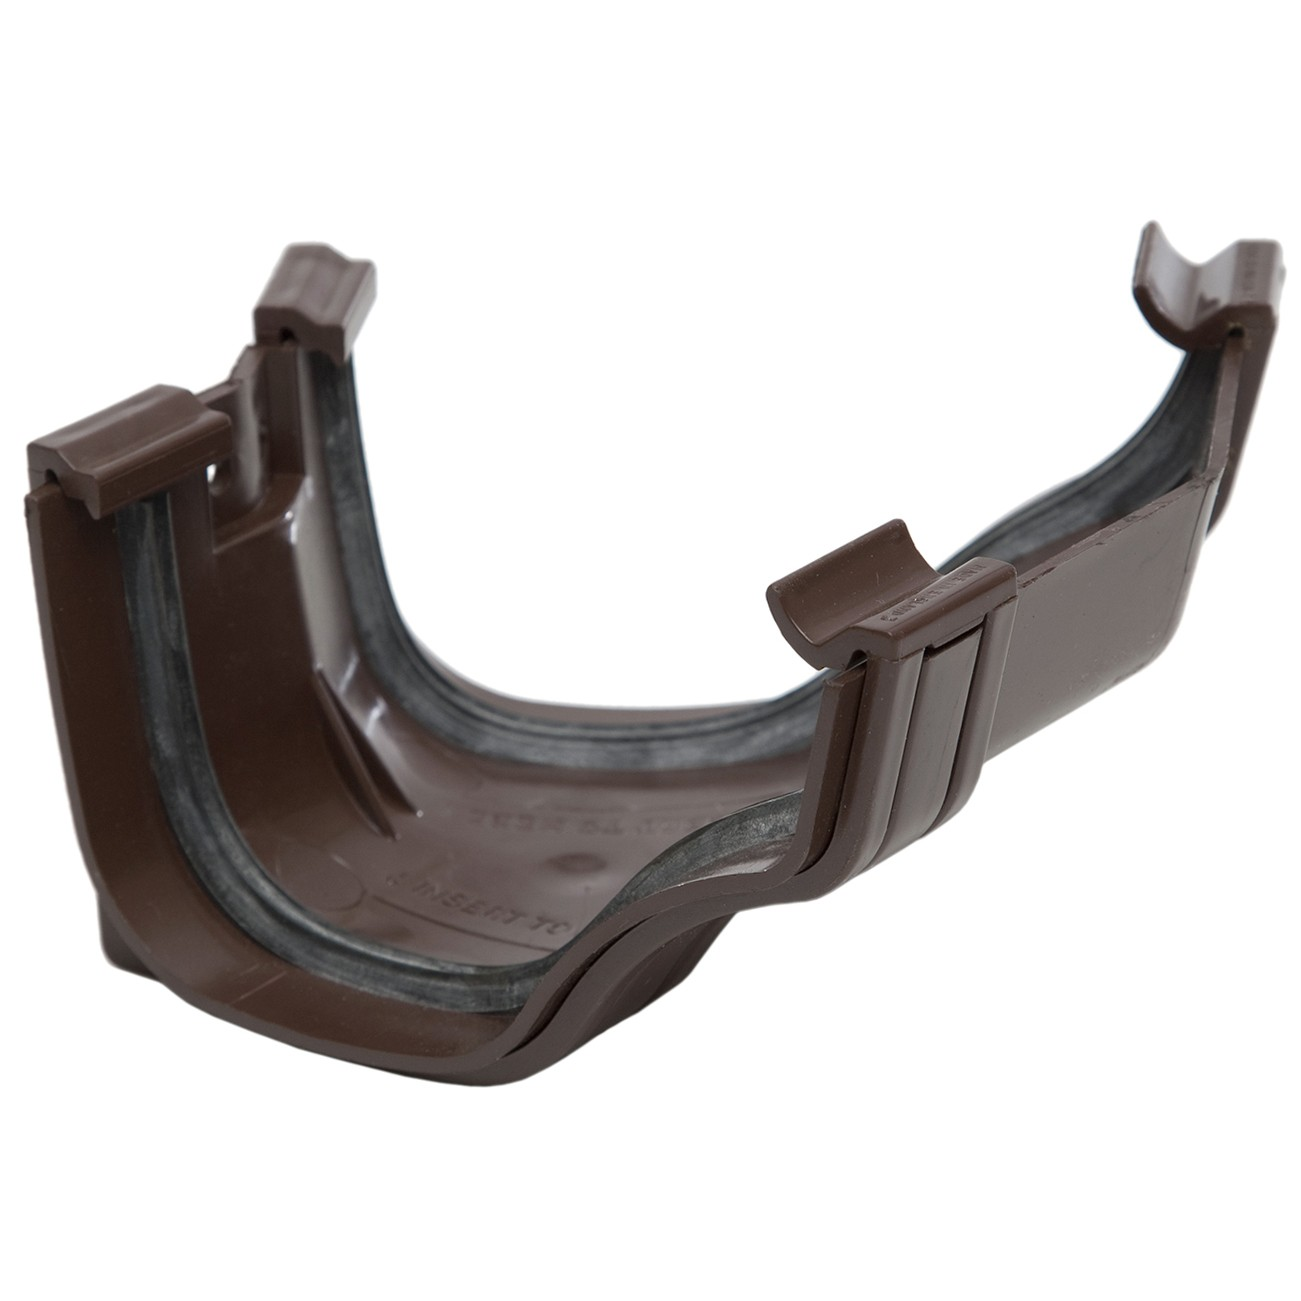 Polypipe 130mm Ogee Extra Capacity Gutter 150 Degree Angle (External, Fabricated) - Brown